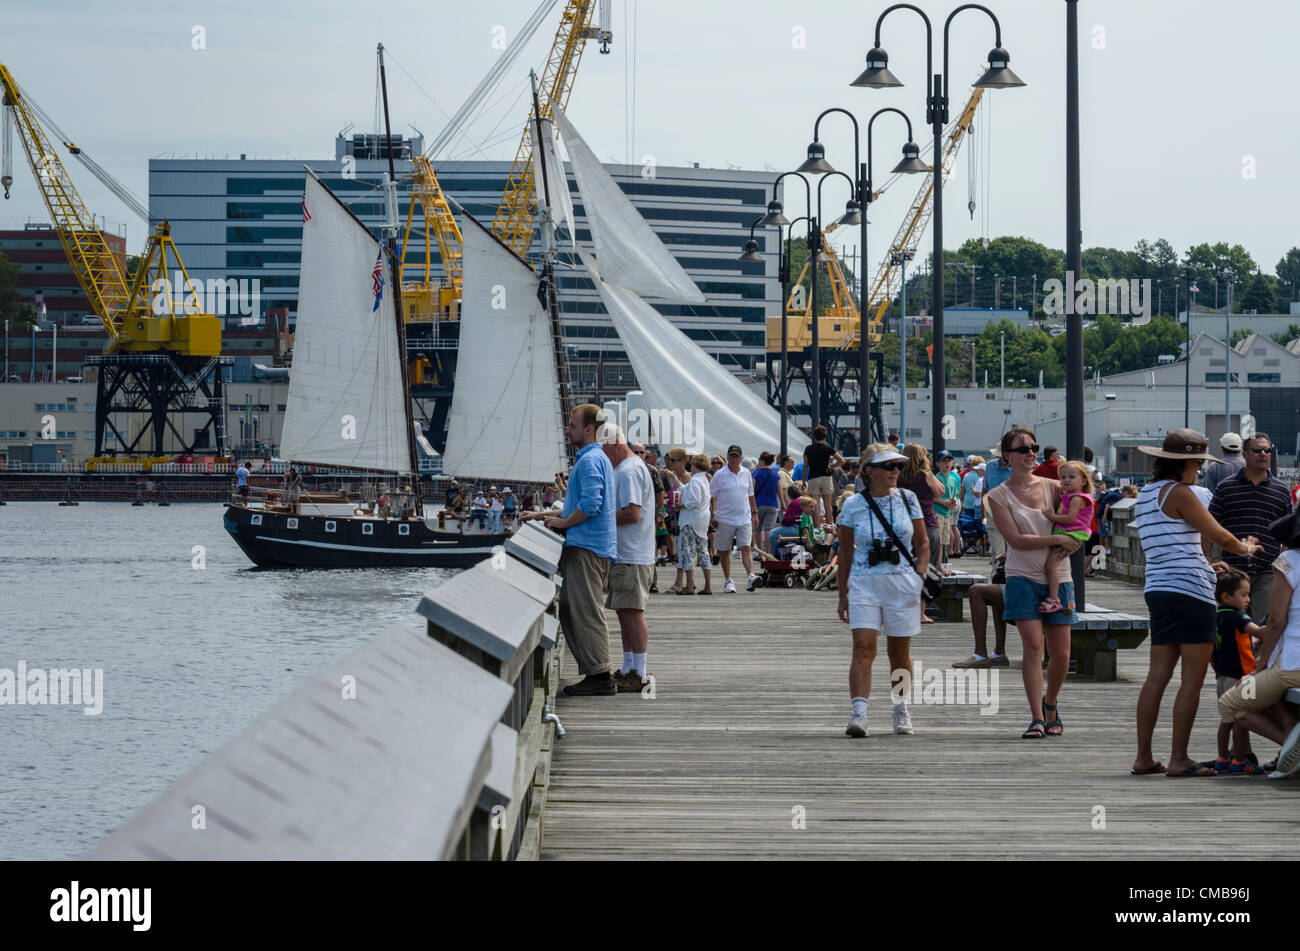 New London, Connecticut, USA - July 9, 2012: Crowds gather to see the tall ships sail away from Fort Trumbull to - Stock Image